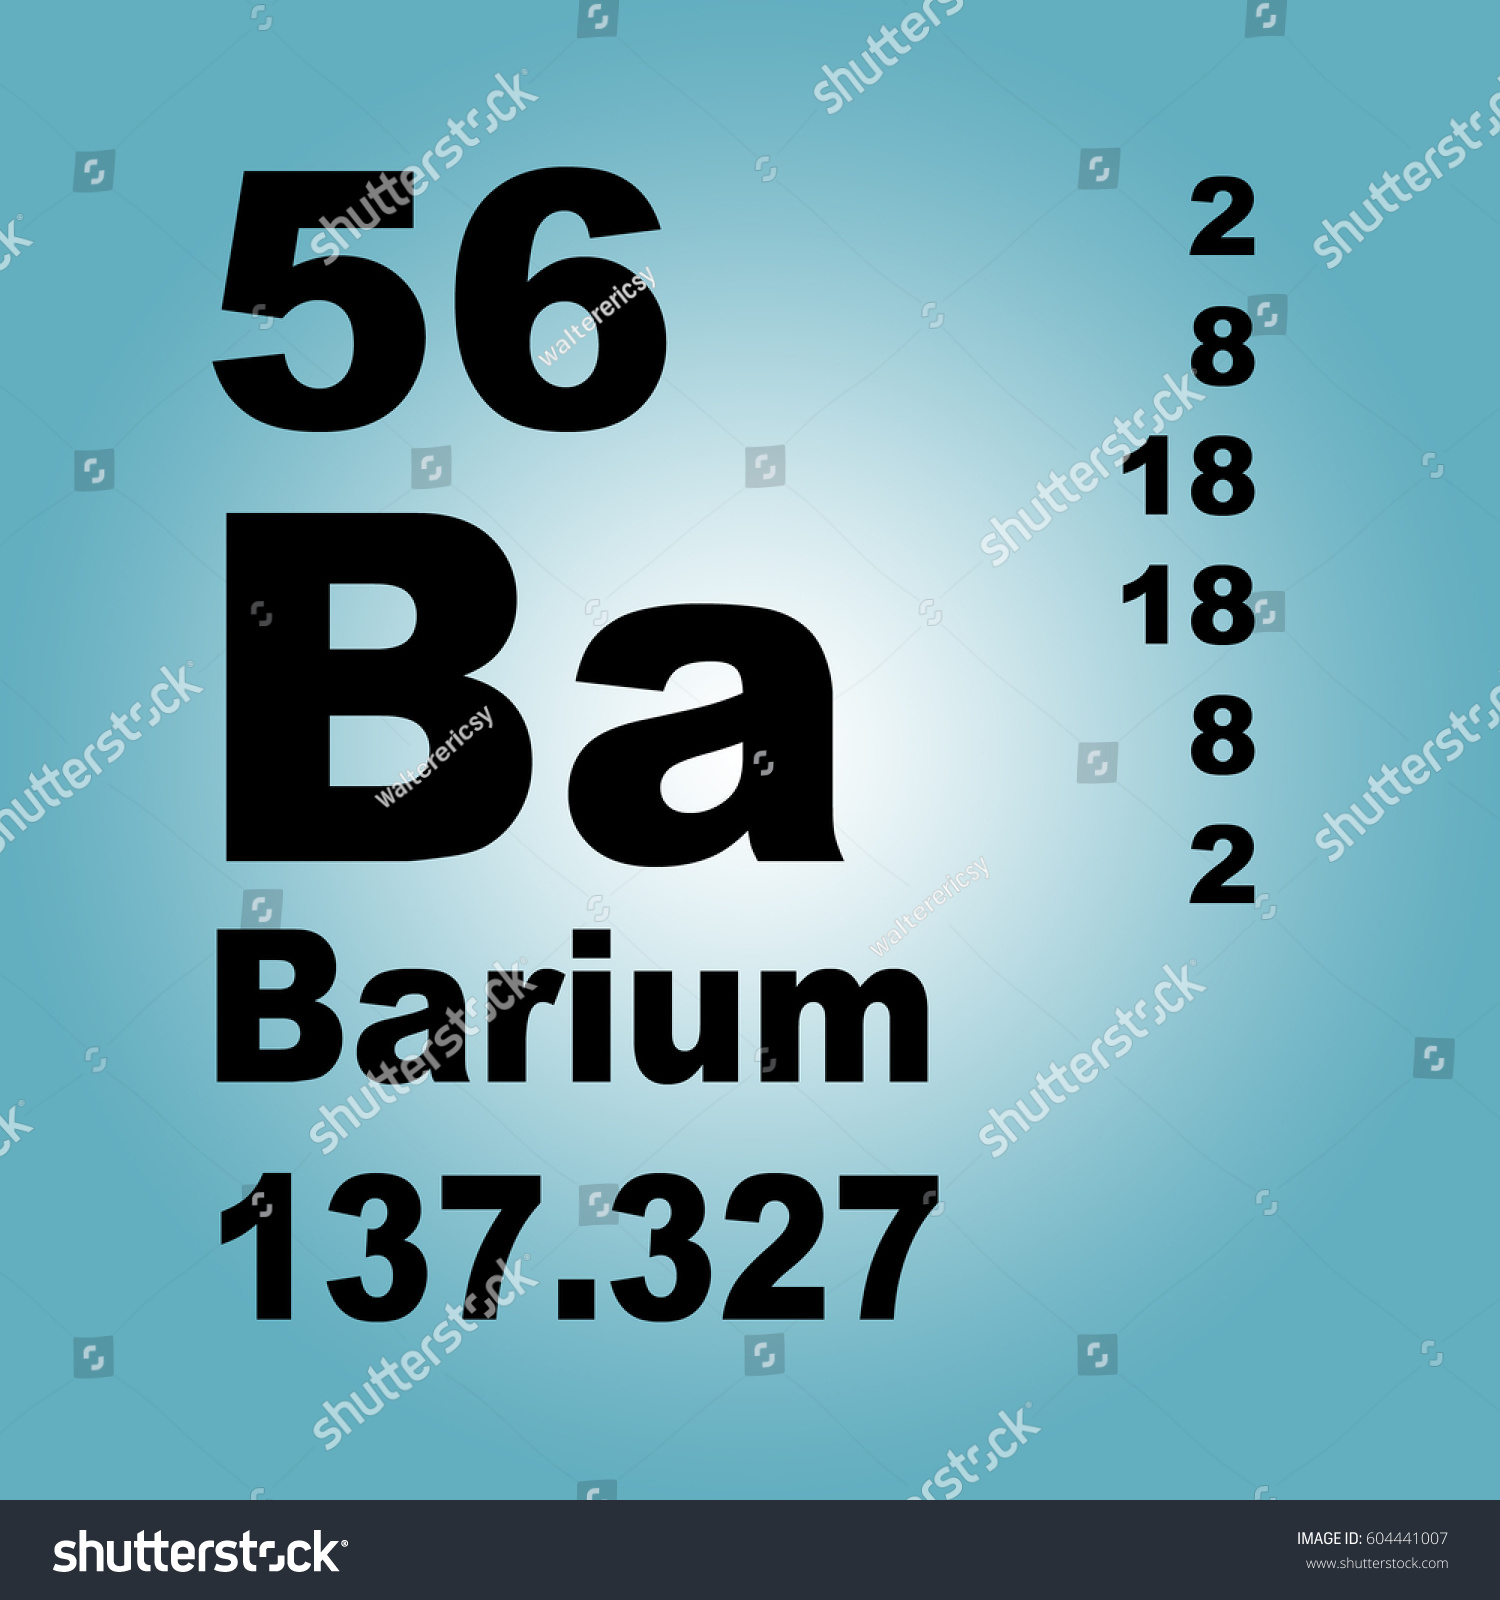 Barium periodic table elements stock illustration 604441007 barium periodic table of elements gamestrikefo Image collections